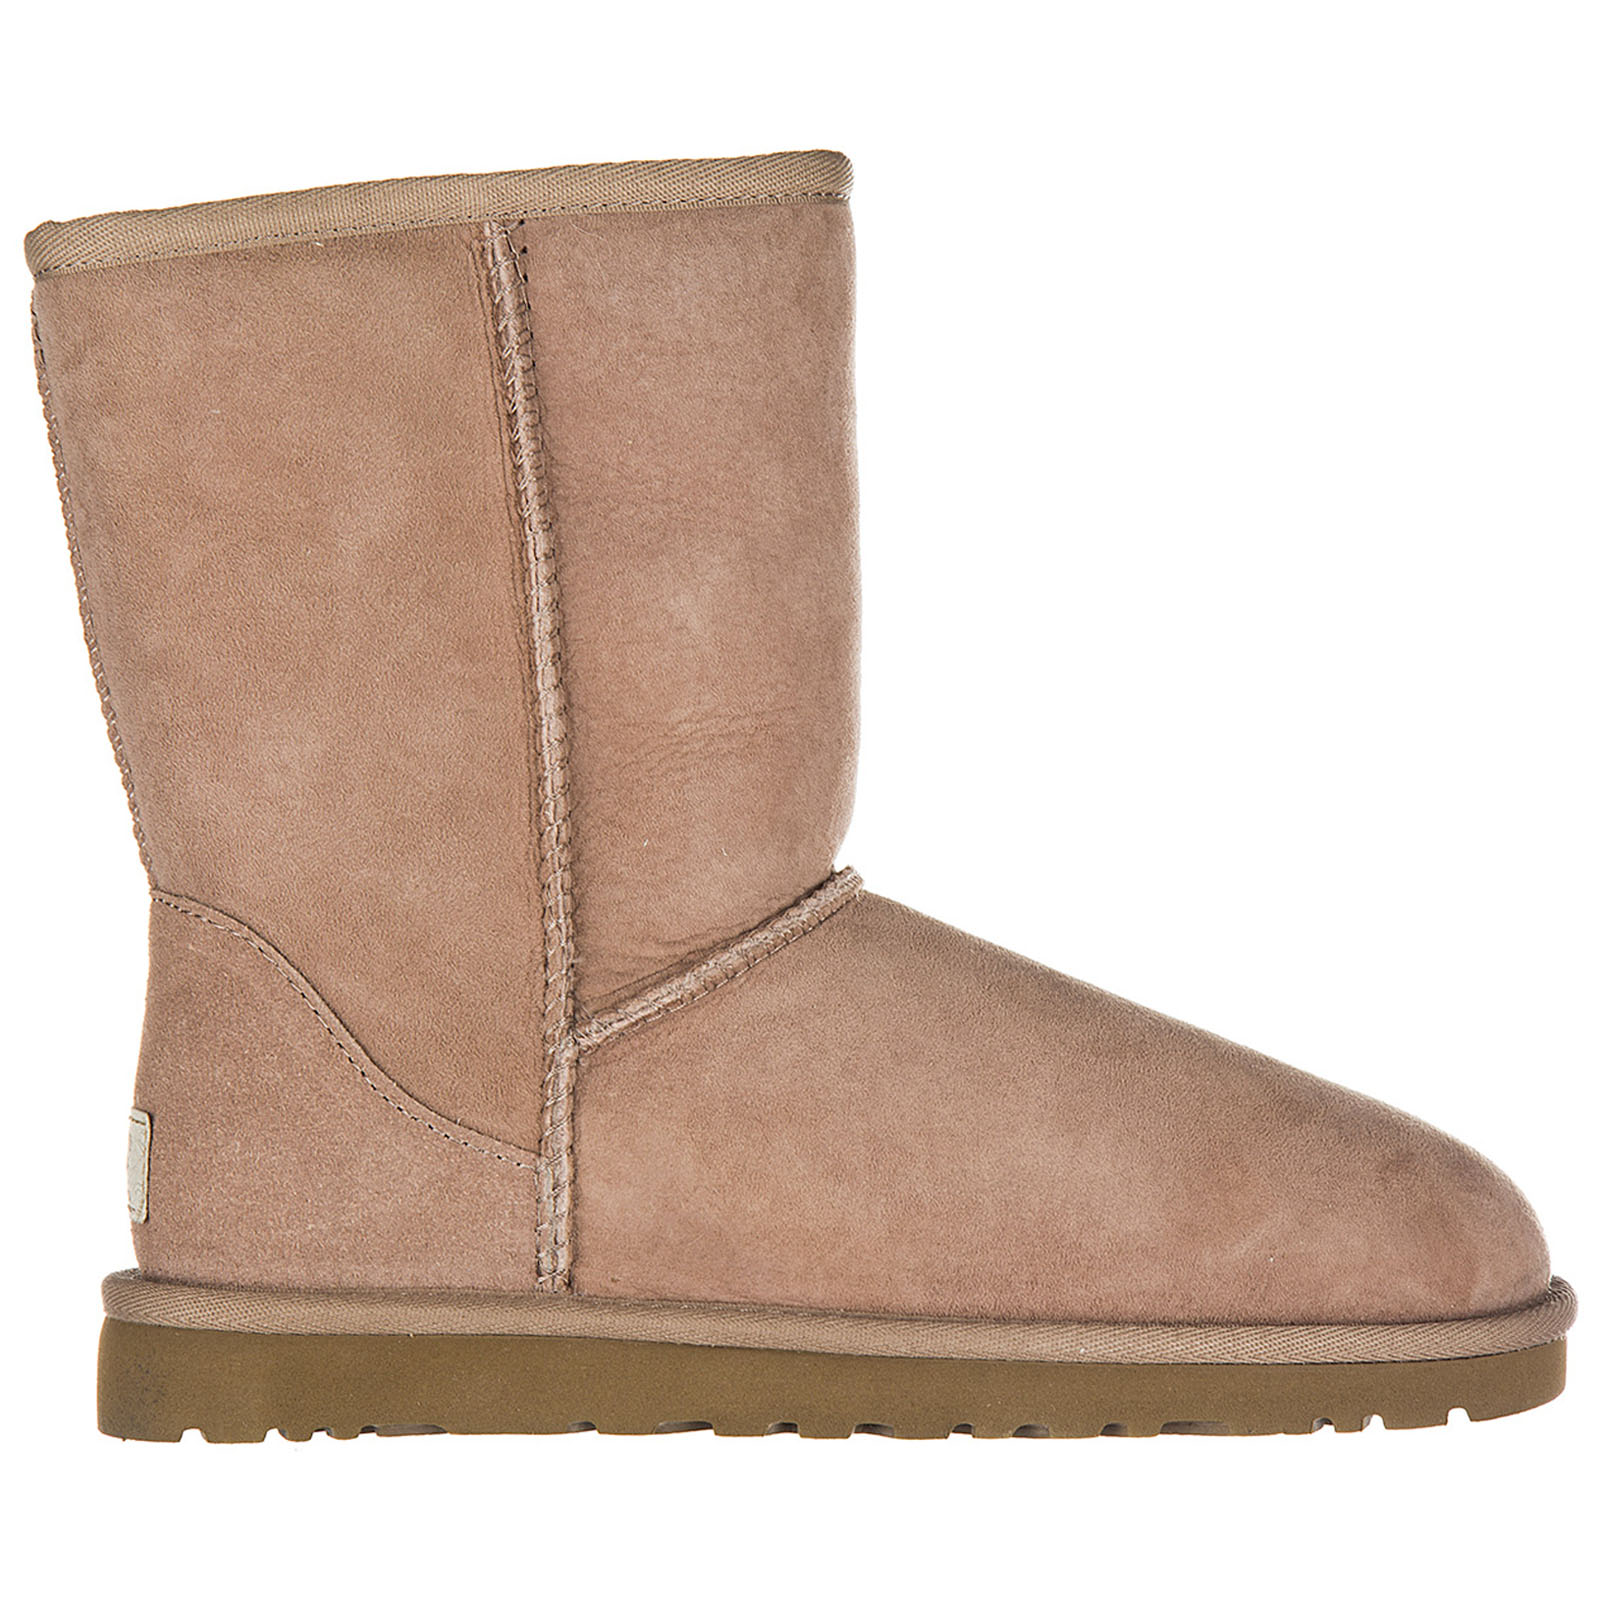 Women's suede ankle boots booties w classic short